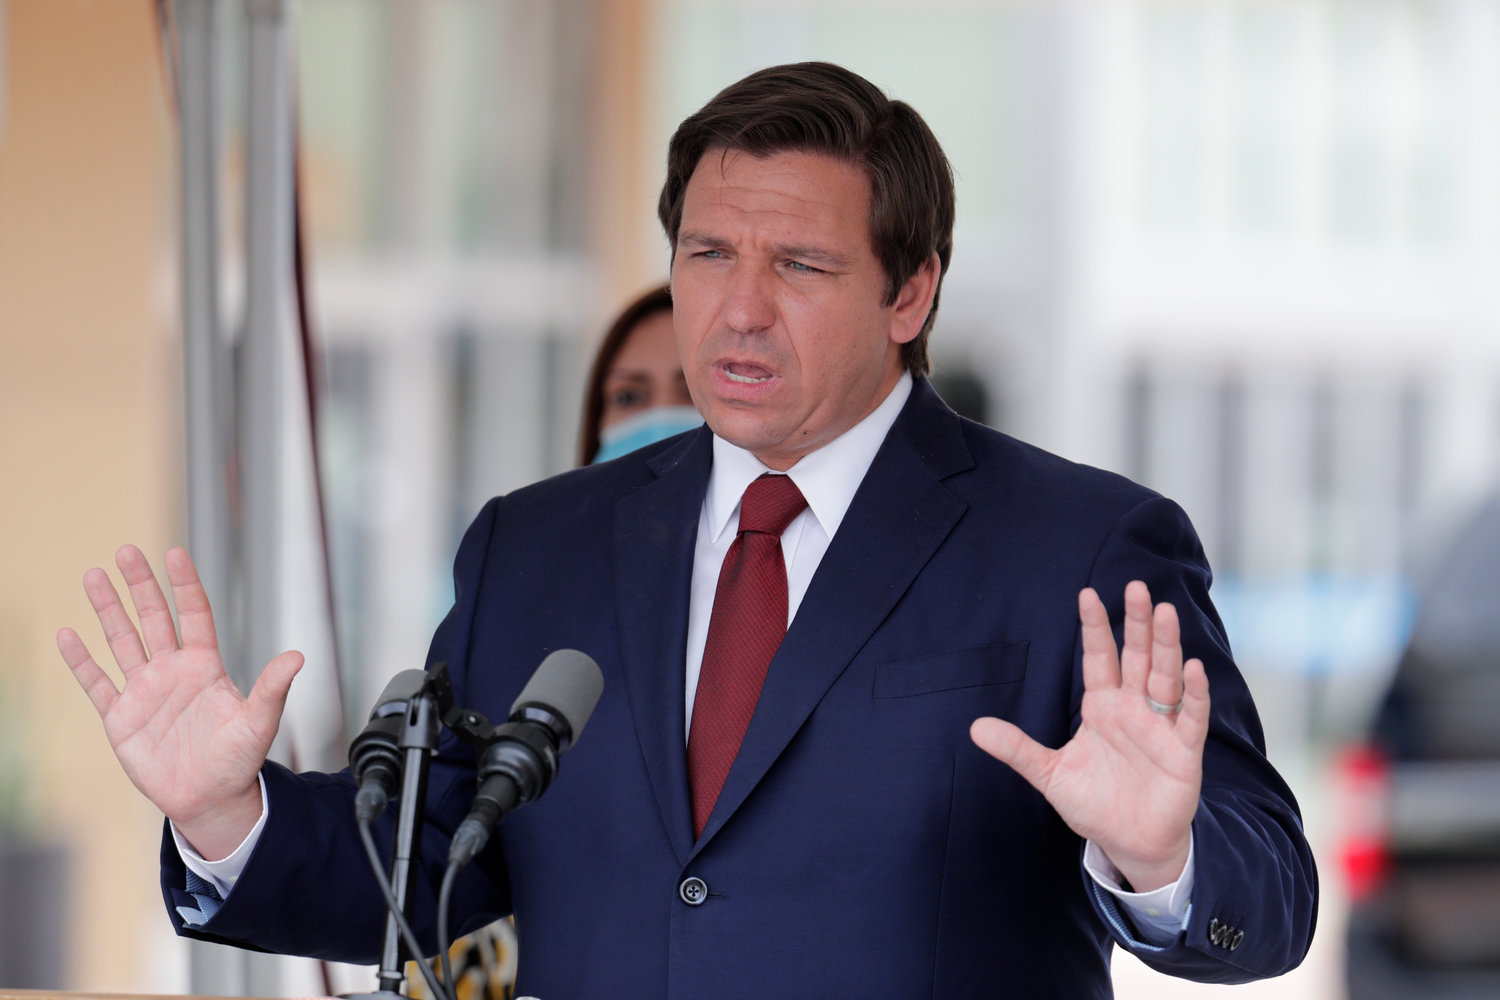 In this Thursday, May 14, 2020, file photo, Florida Gov. Ron DeSantis speaks at a news conference in Doral, Fla. A federal appellate court has stayed a lower court ruling that gave impoverished Florida felons the right to vote. The order issued Wednesday, July 1, 2020, disappointed voting rights activists and could have national implications in November's presidential election. In May, a federal judge ruled that Florida law can't stop disenfranchised felons from voting because they can't pay back any legal fees and restitution they owe. DeSantis immediately appealed to the Atlanta-based 11th U.S. Circuit Court of Appeals, requesting a stay of the ruling and a review of the case by the full appeals court. (AP Photo/Lynne Sladky, File)